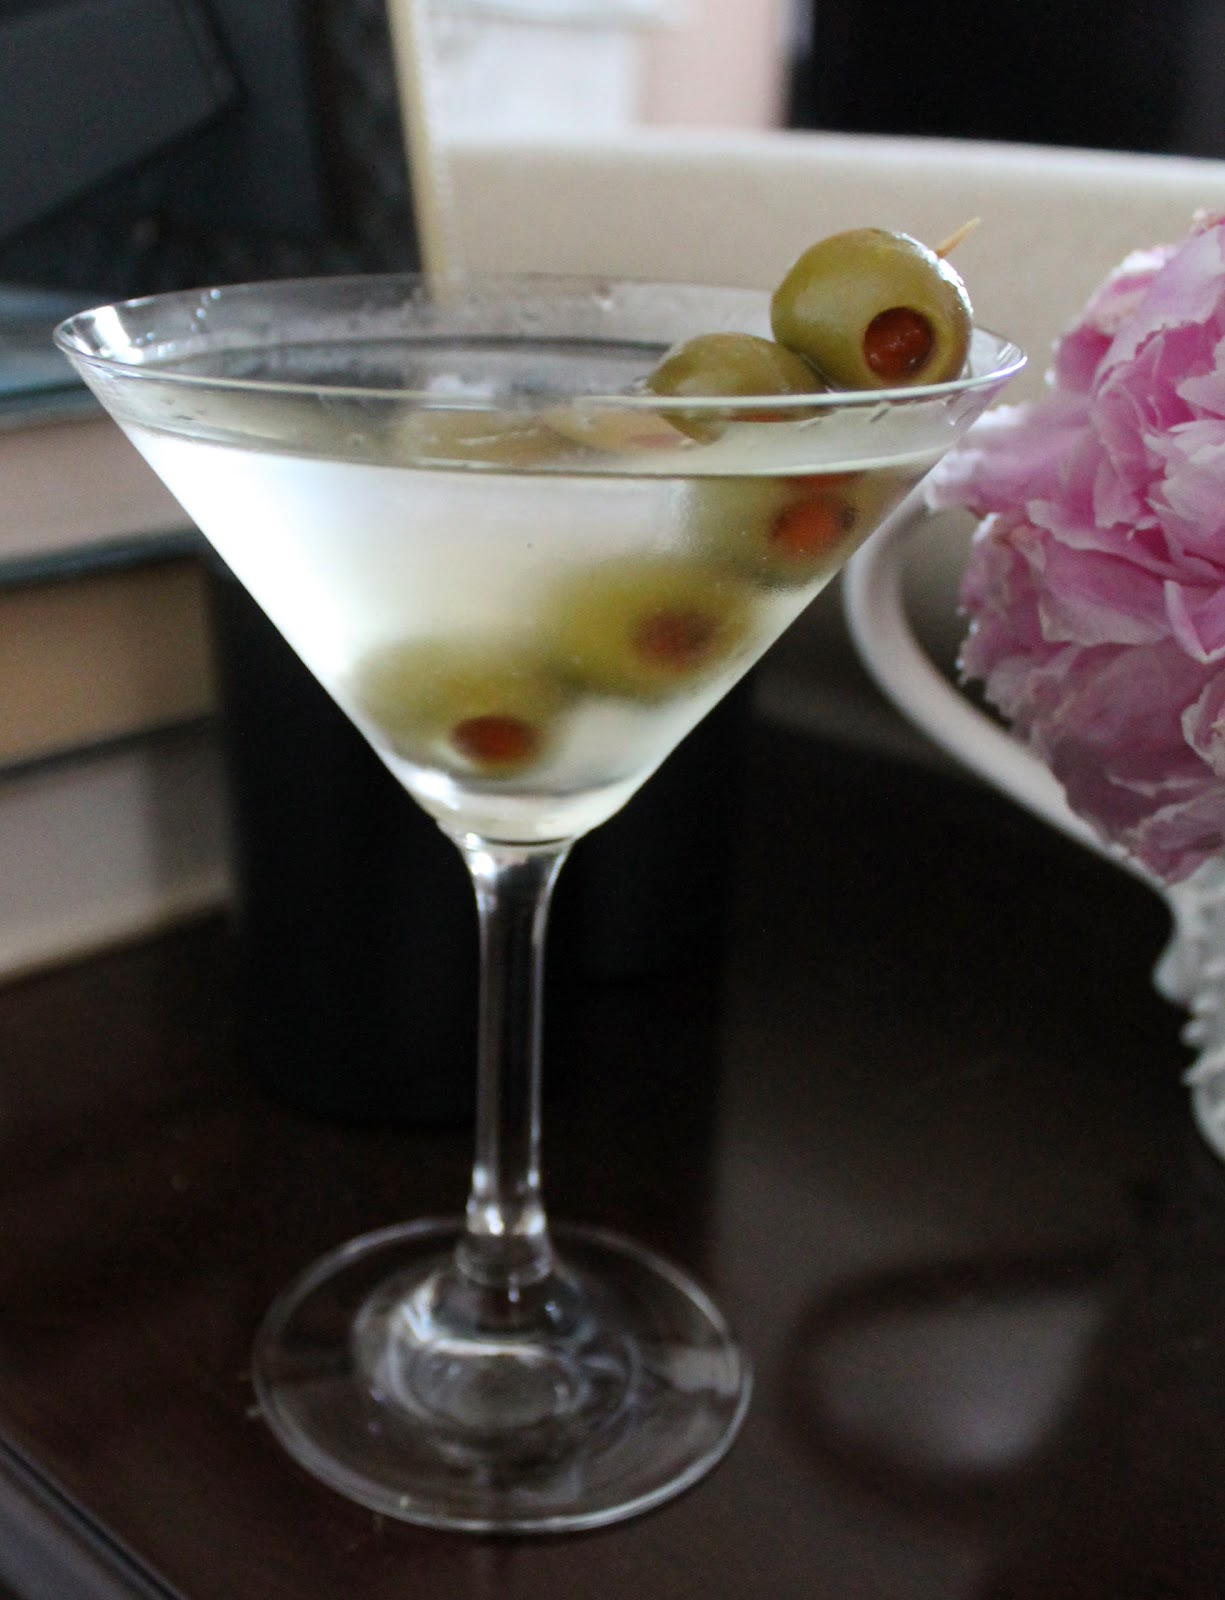 ... ...in cleveland: Mad Men Monday - Flank Steak & Extra Dirty Martinis